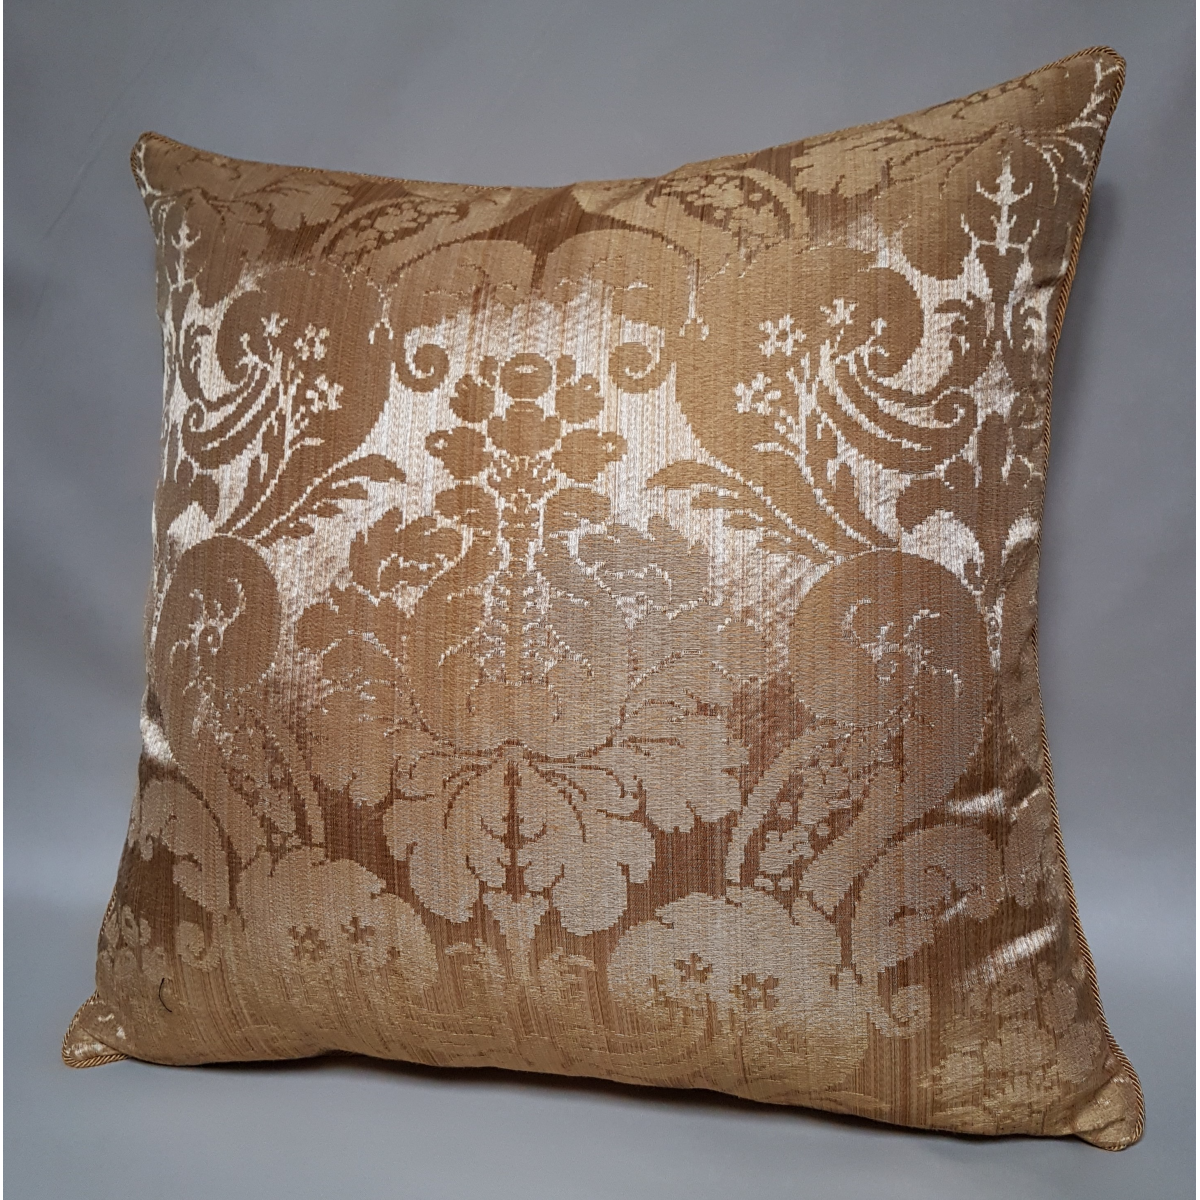 Decor Astonishing Gold Throw Pillows For Home Accessories Ideas Stephaniegatschet Com